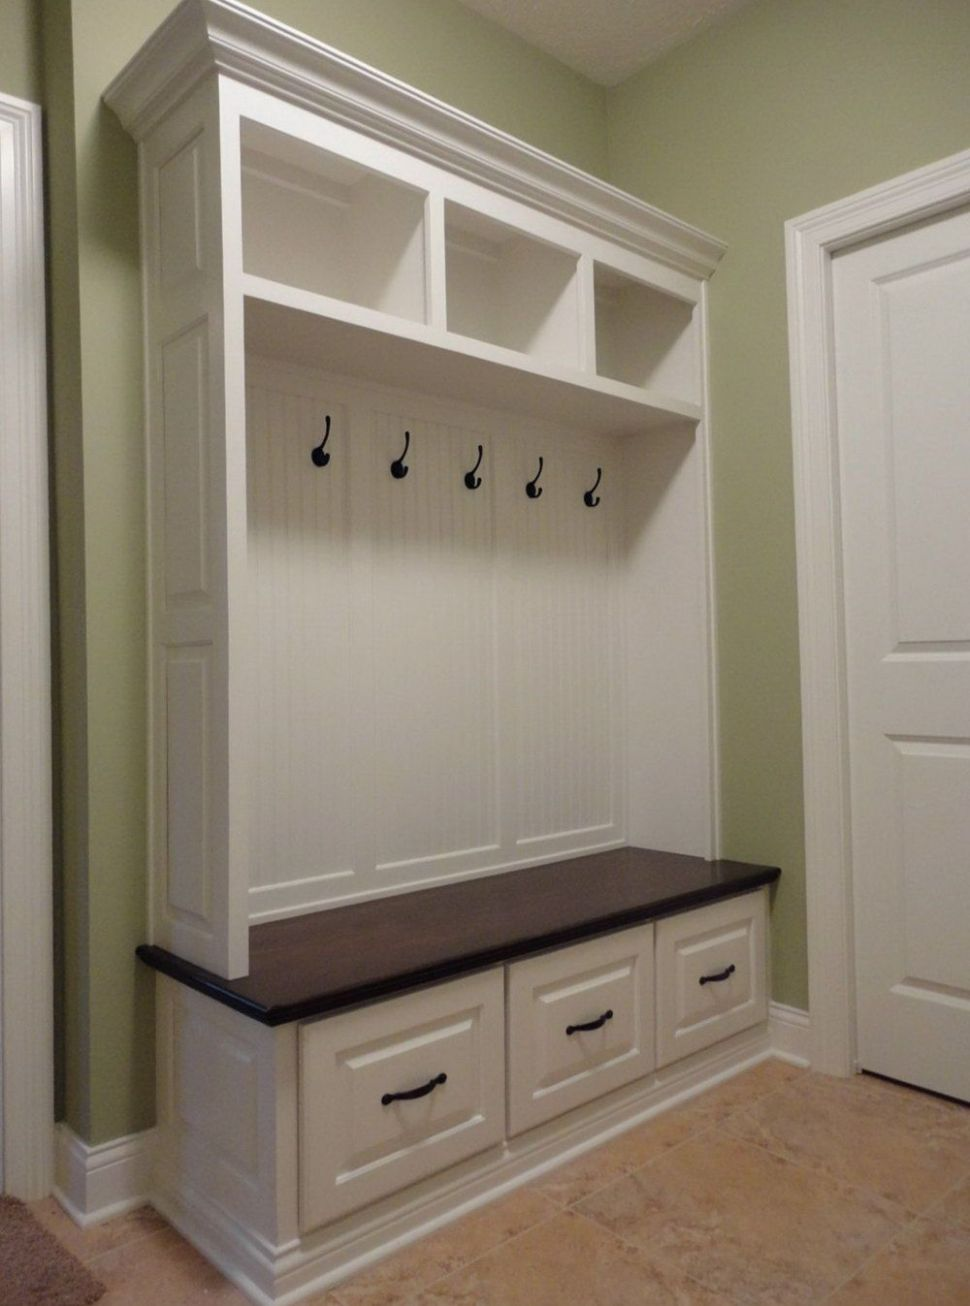 Laundry Room Bench And Hooks (With images) | Mud room storage ..